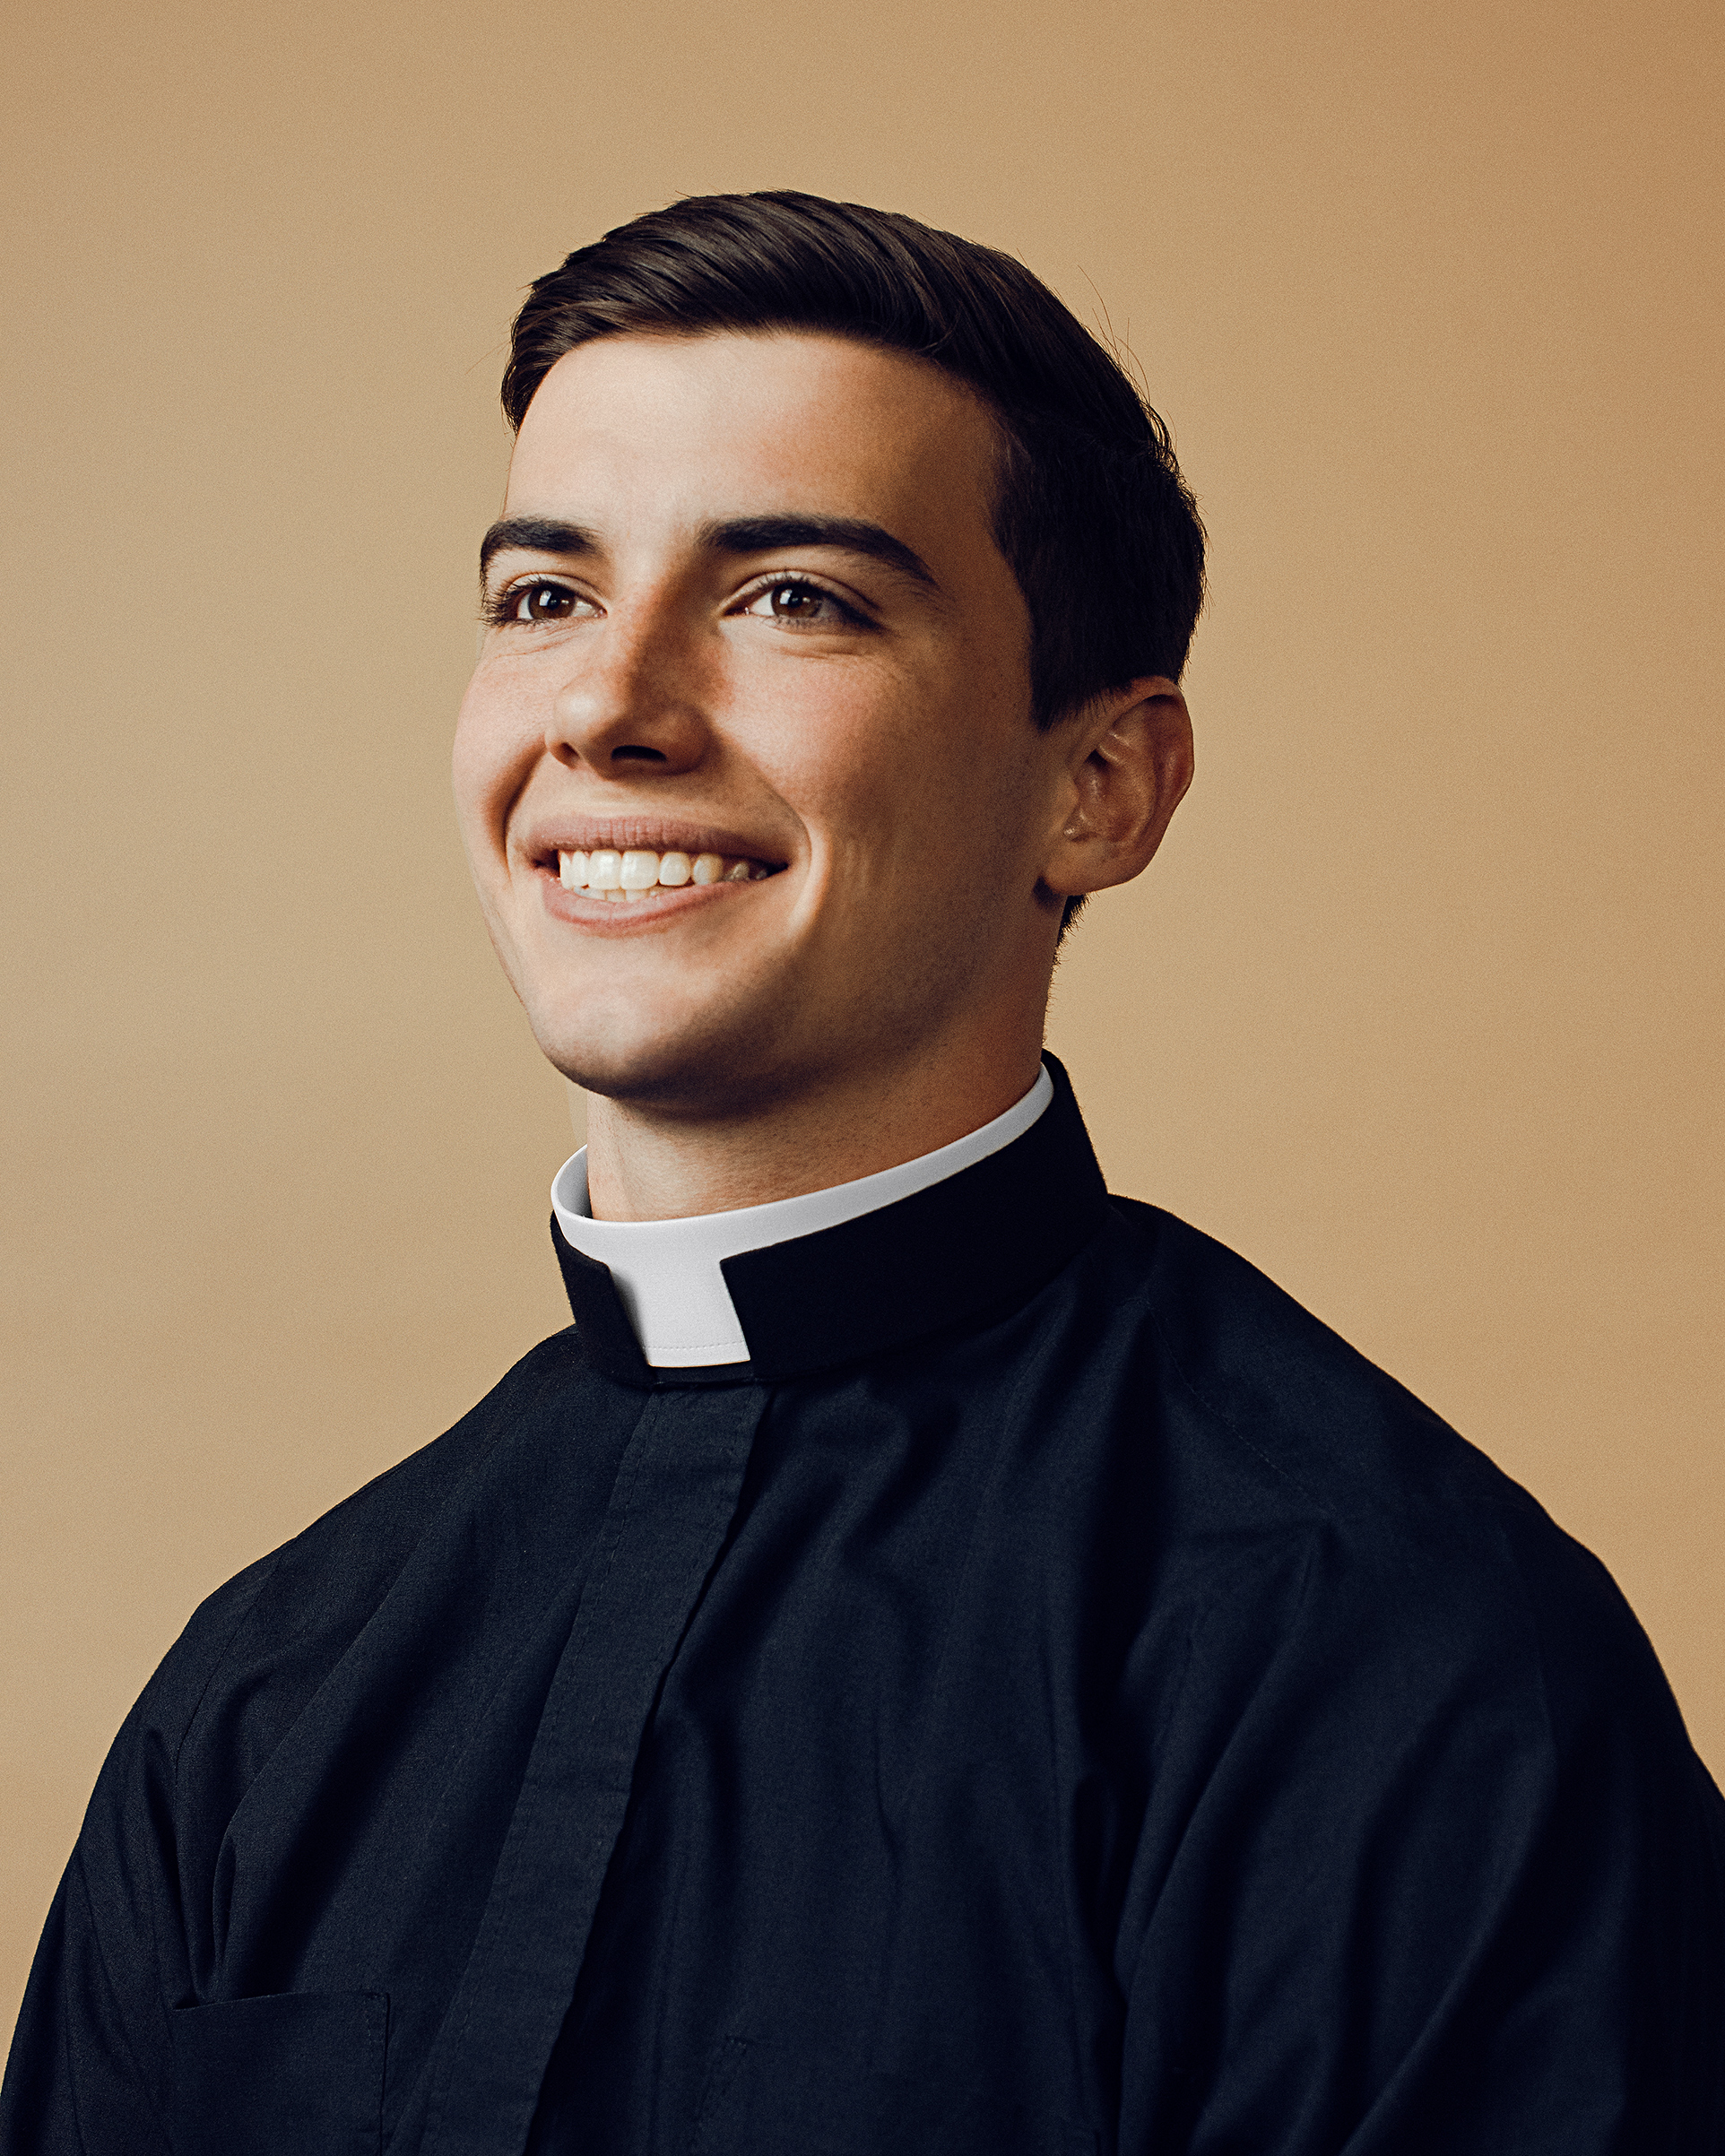 Nicholas Morrison, 22, graduated in May with a philosophy degree from Catholic University of America and will continue his seminary studies in Rome next year